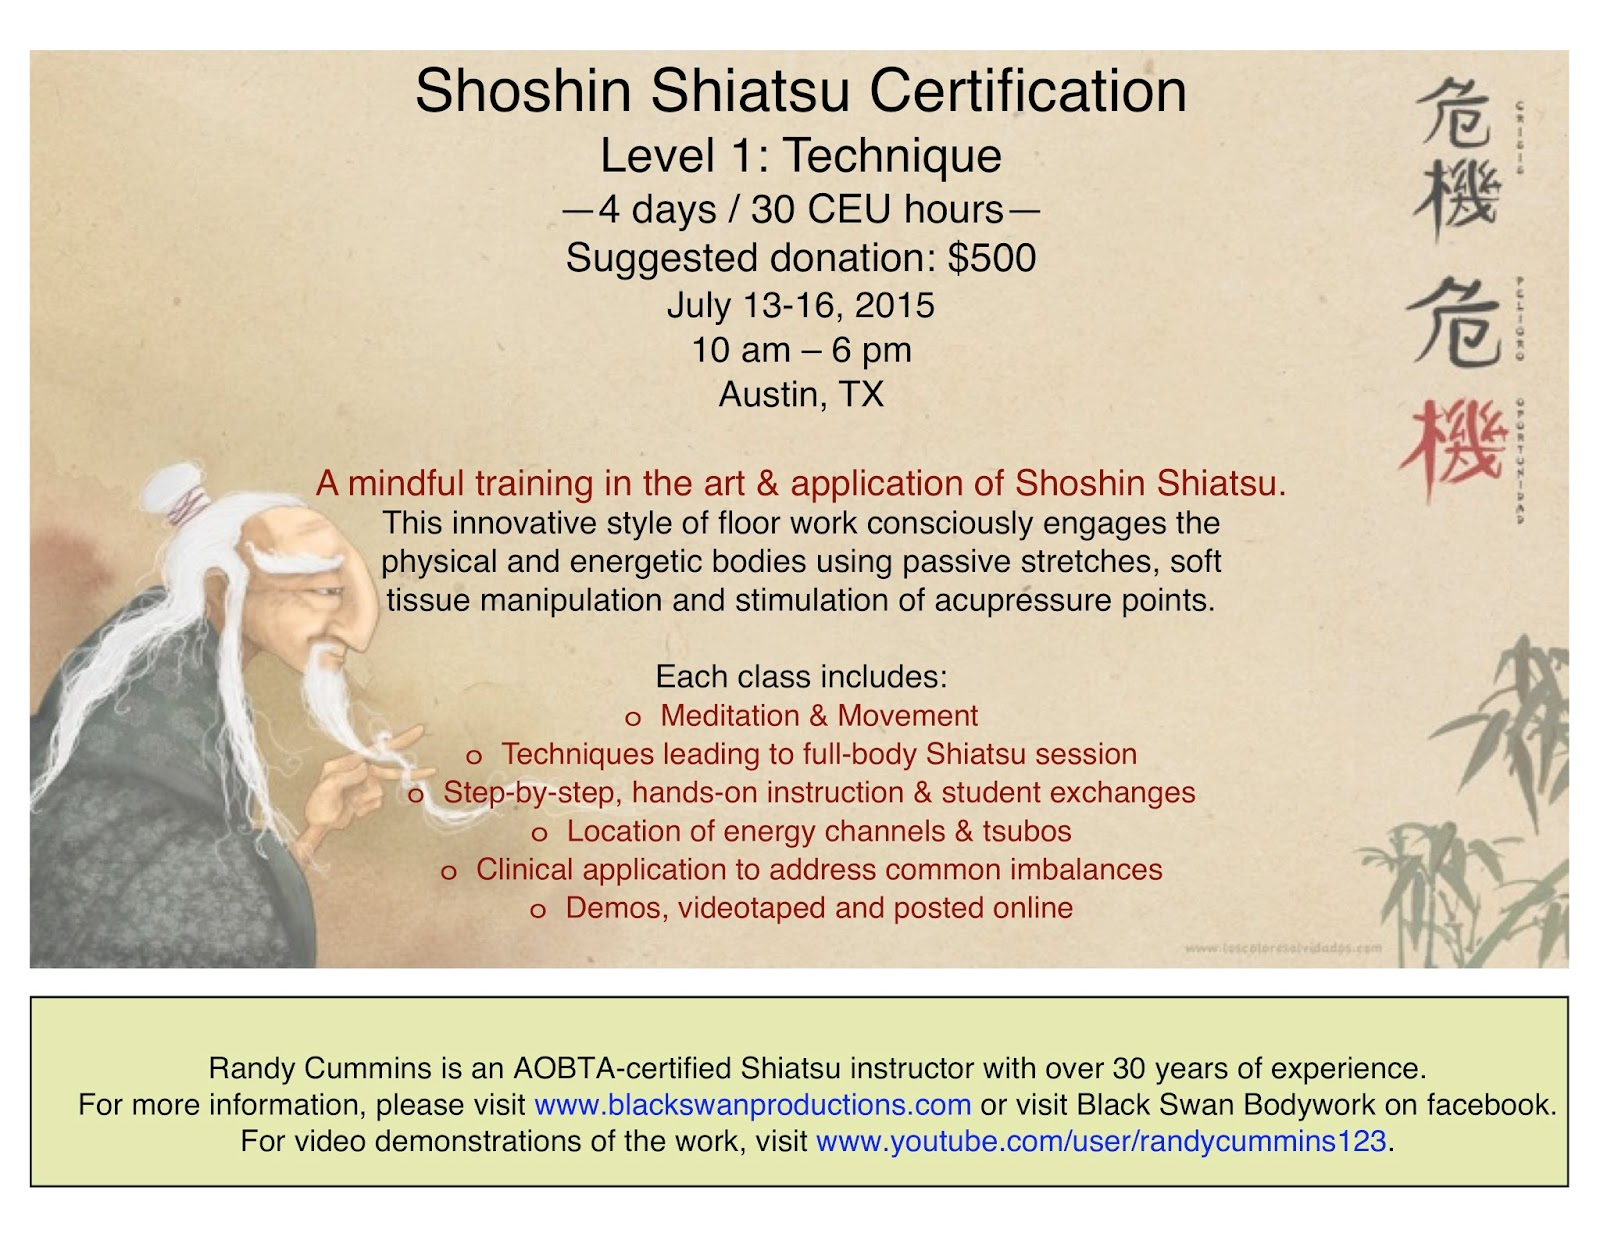 Black swan teaches 4 day 30 ceu shoshin shiatsu certification 4 day 30 ceu shoshin shiatsu certification july 13 16 xflitez Gallery